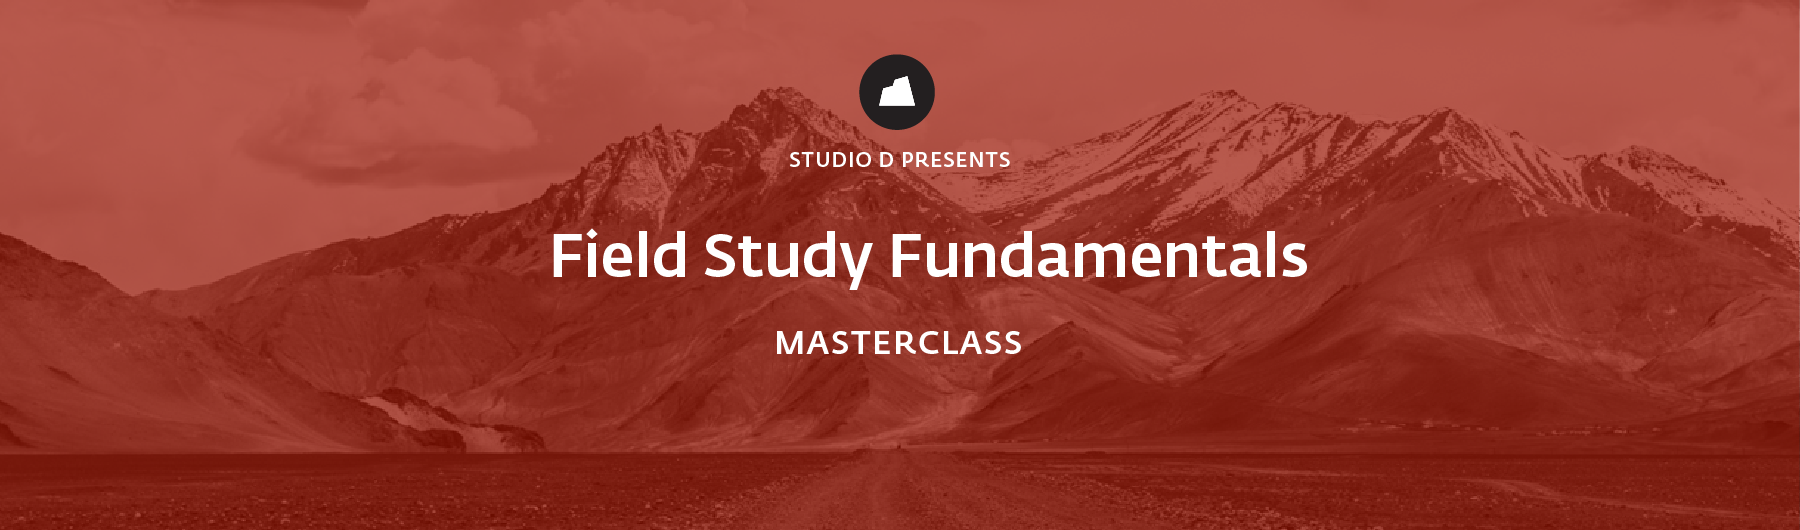 Field Study Fundamentals Masterclass, 20 April 2020, Singapore